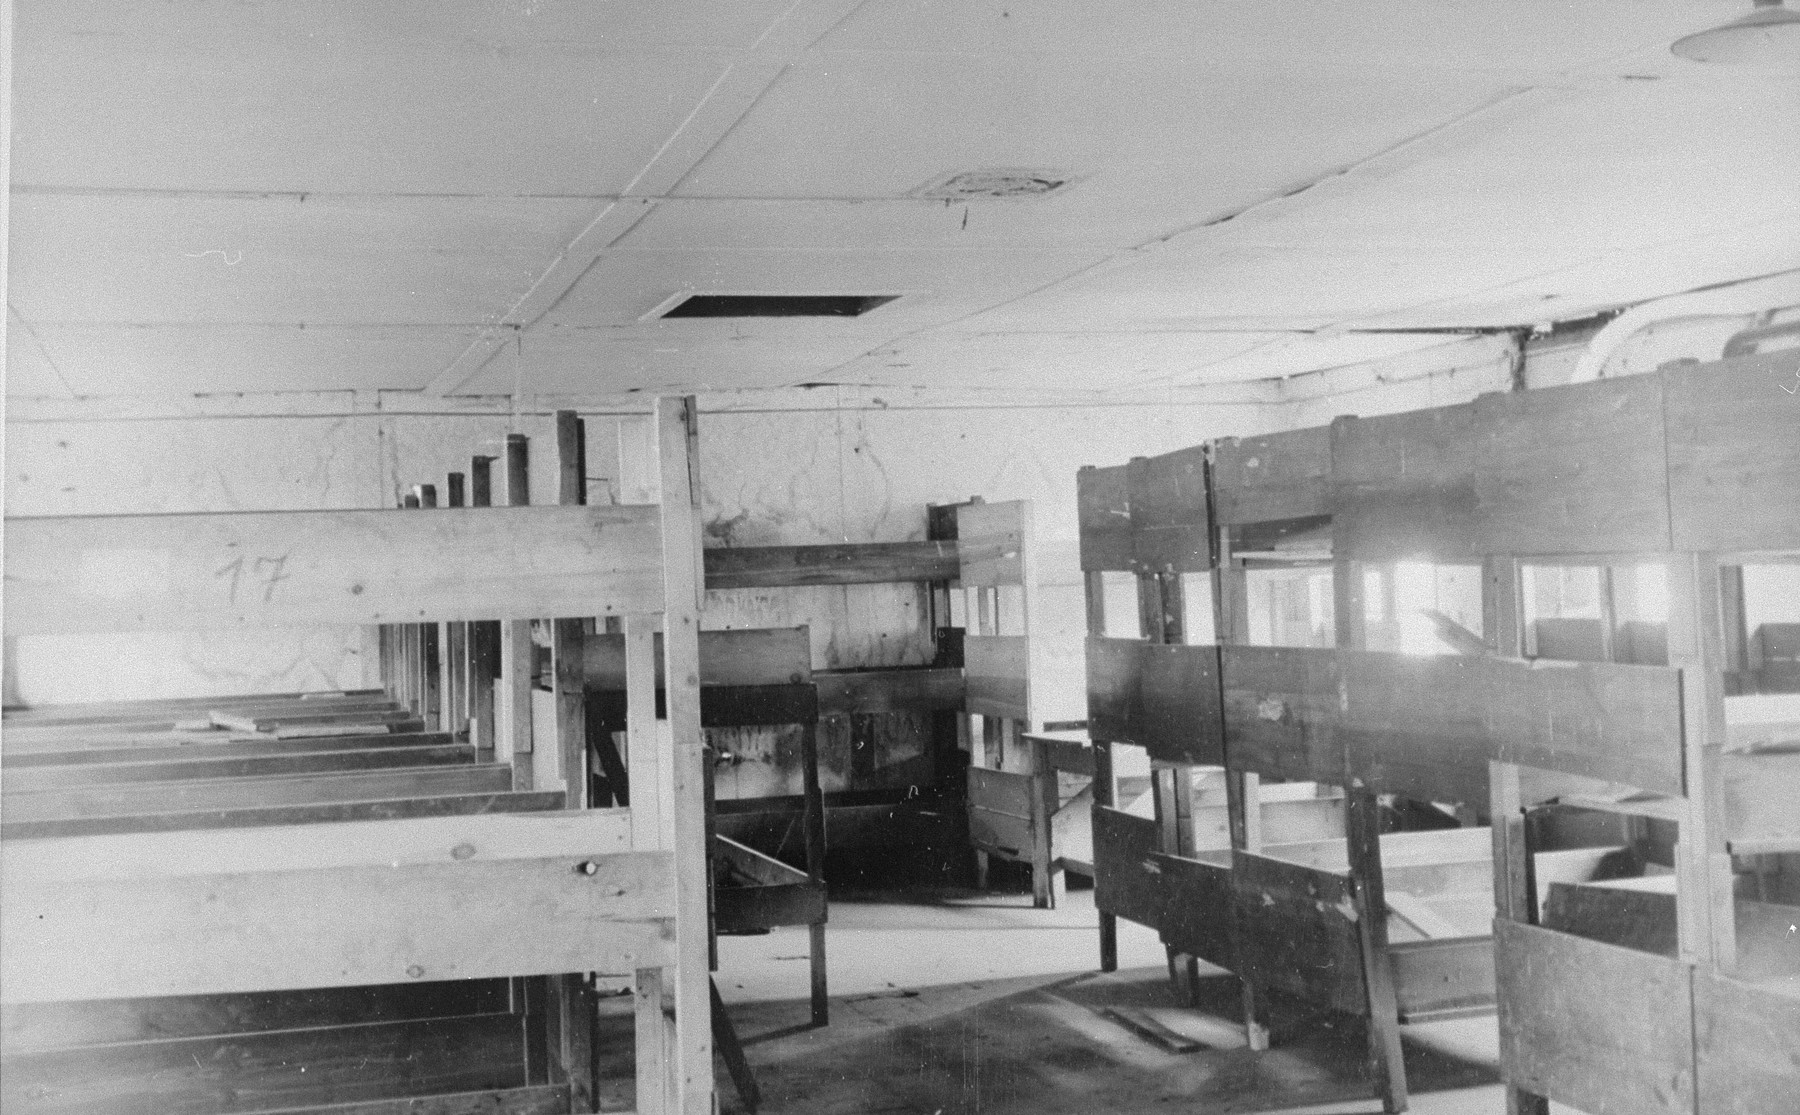 Interior view of barrack #4 in Trzebinia, sub-camp of Auschwitz.